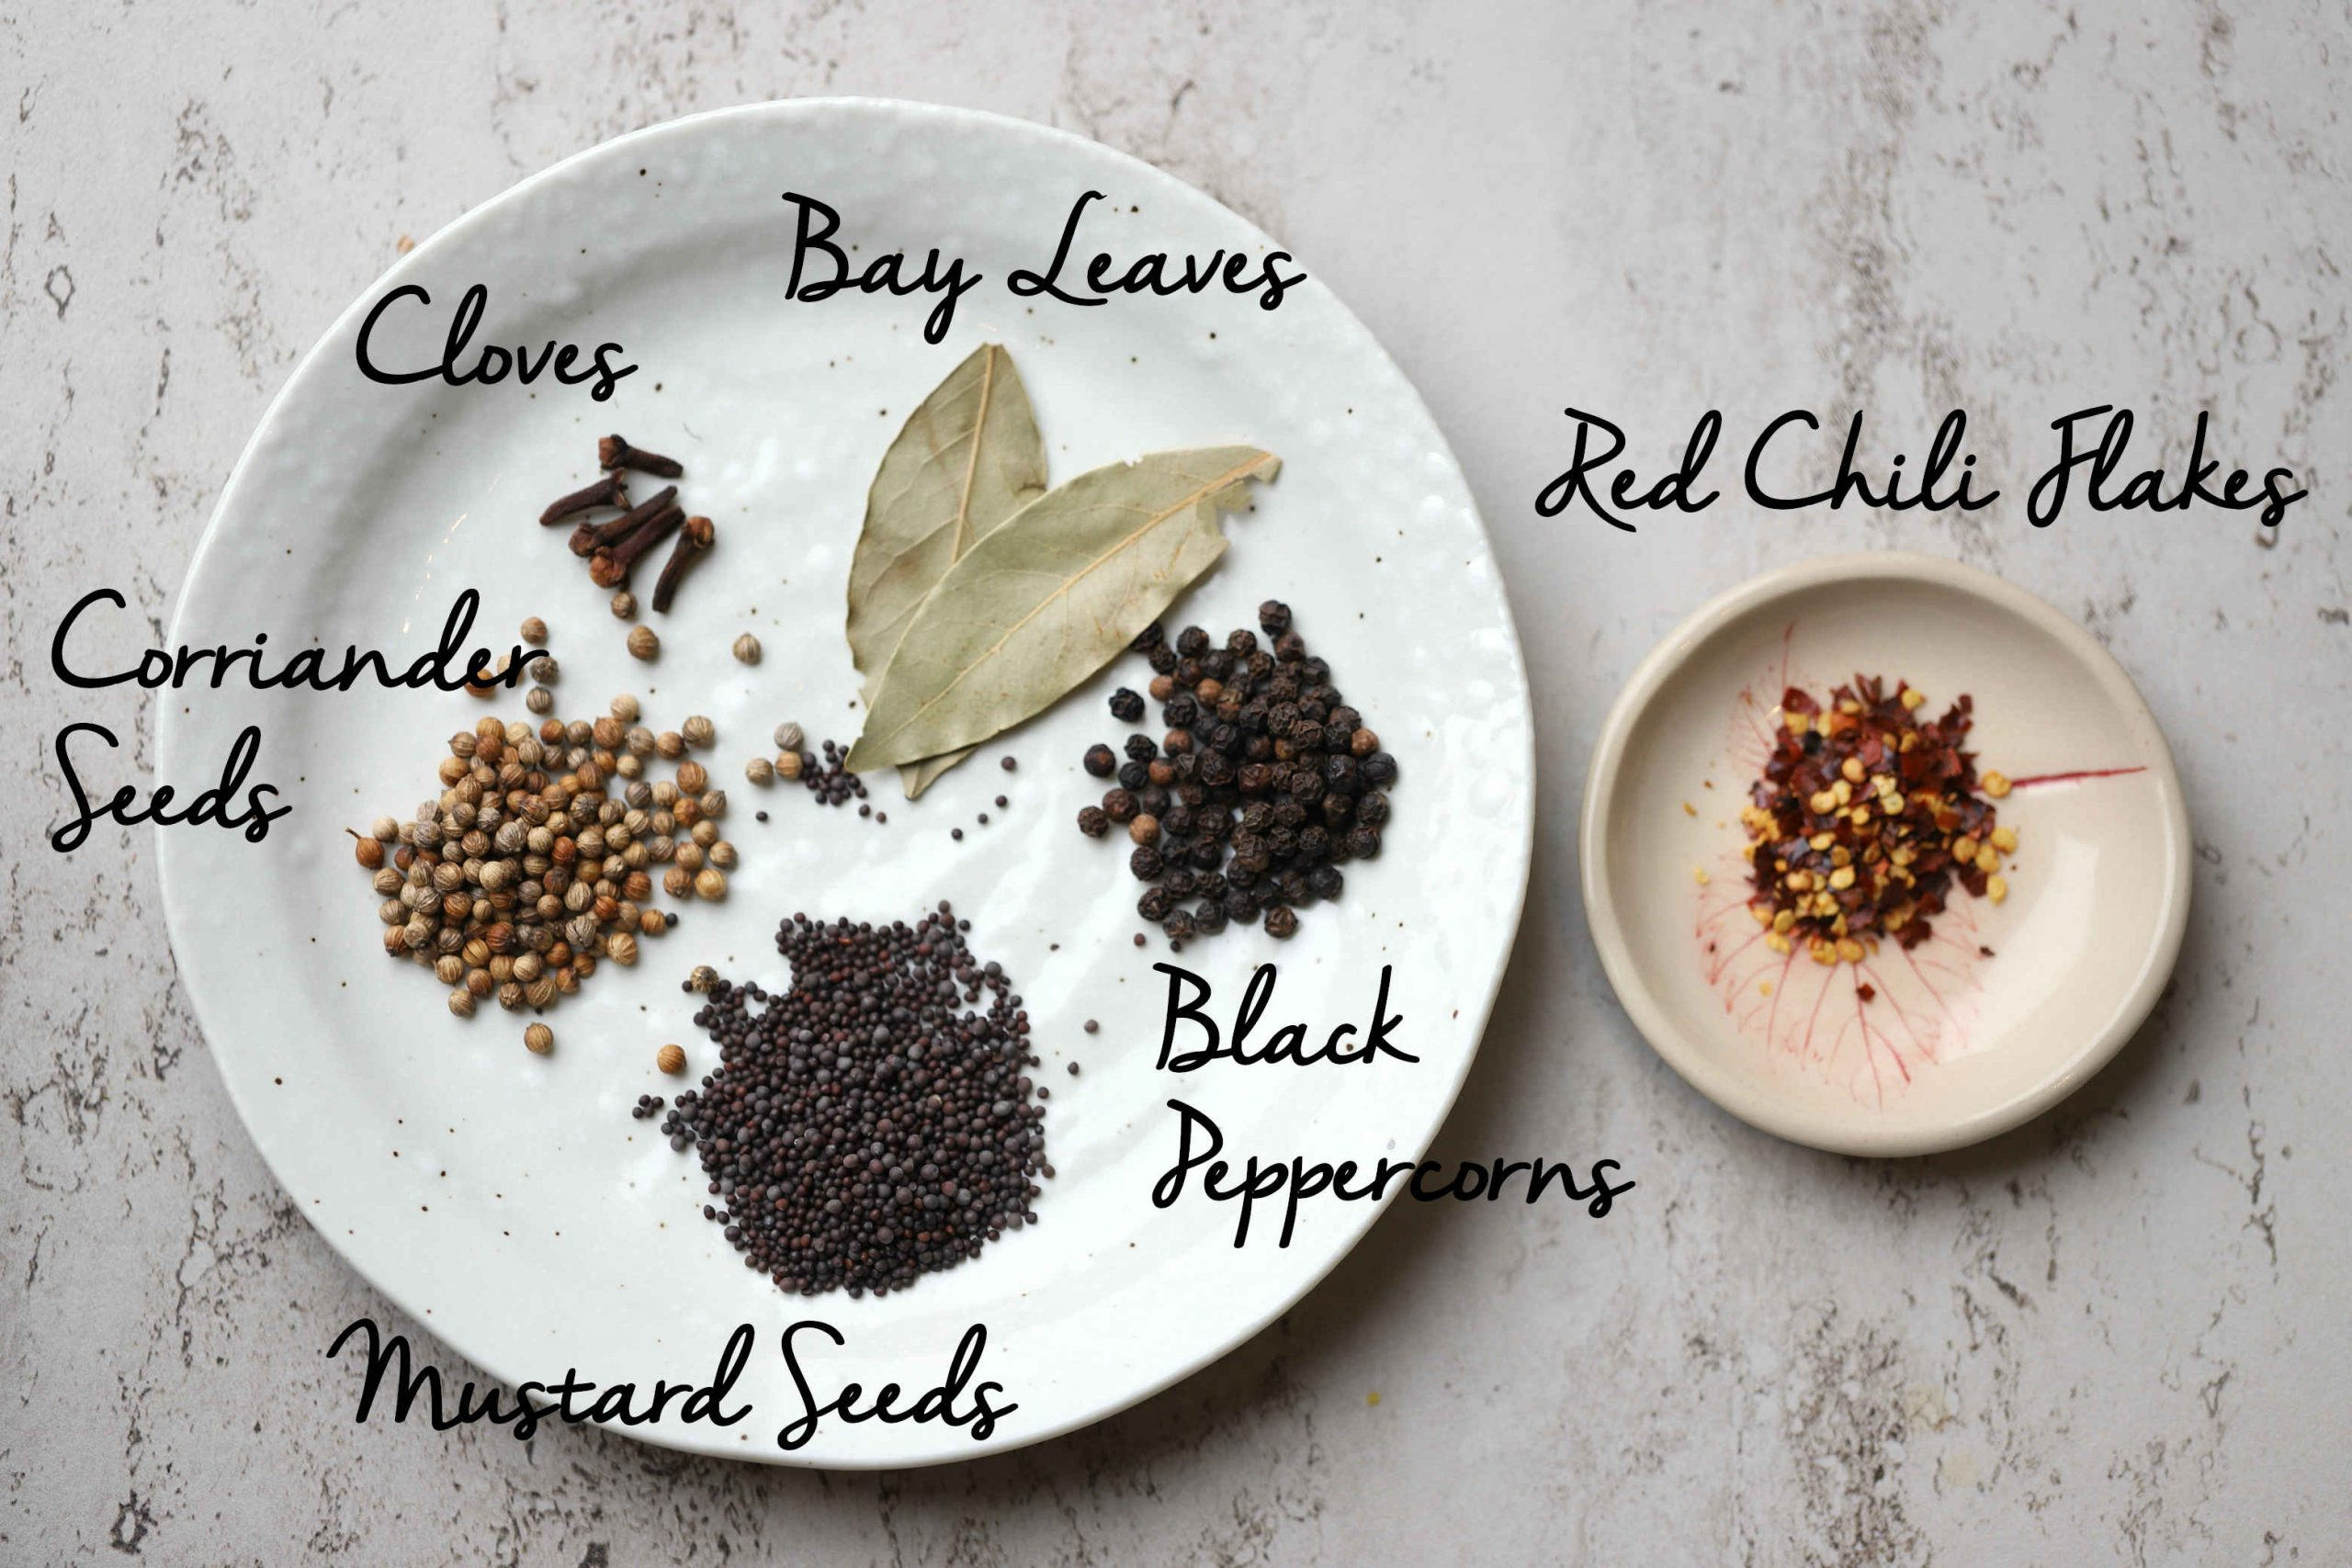 spices for the pickling brine: cloves, bay leaves, black peppercorn, mustard seeds, coriander seeds, chili flakes